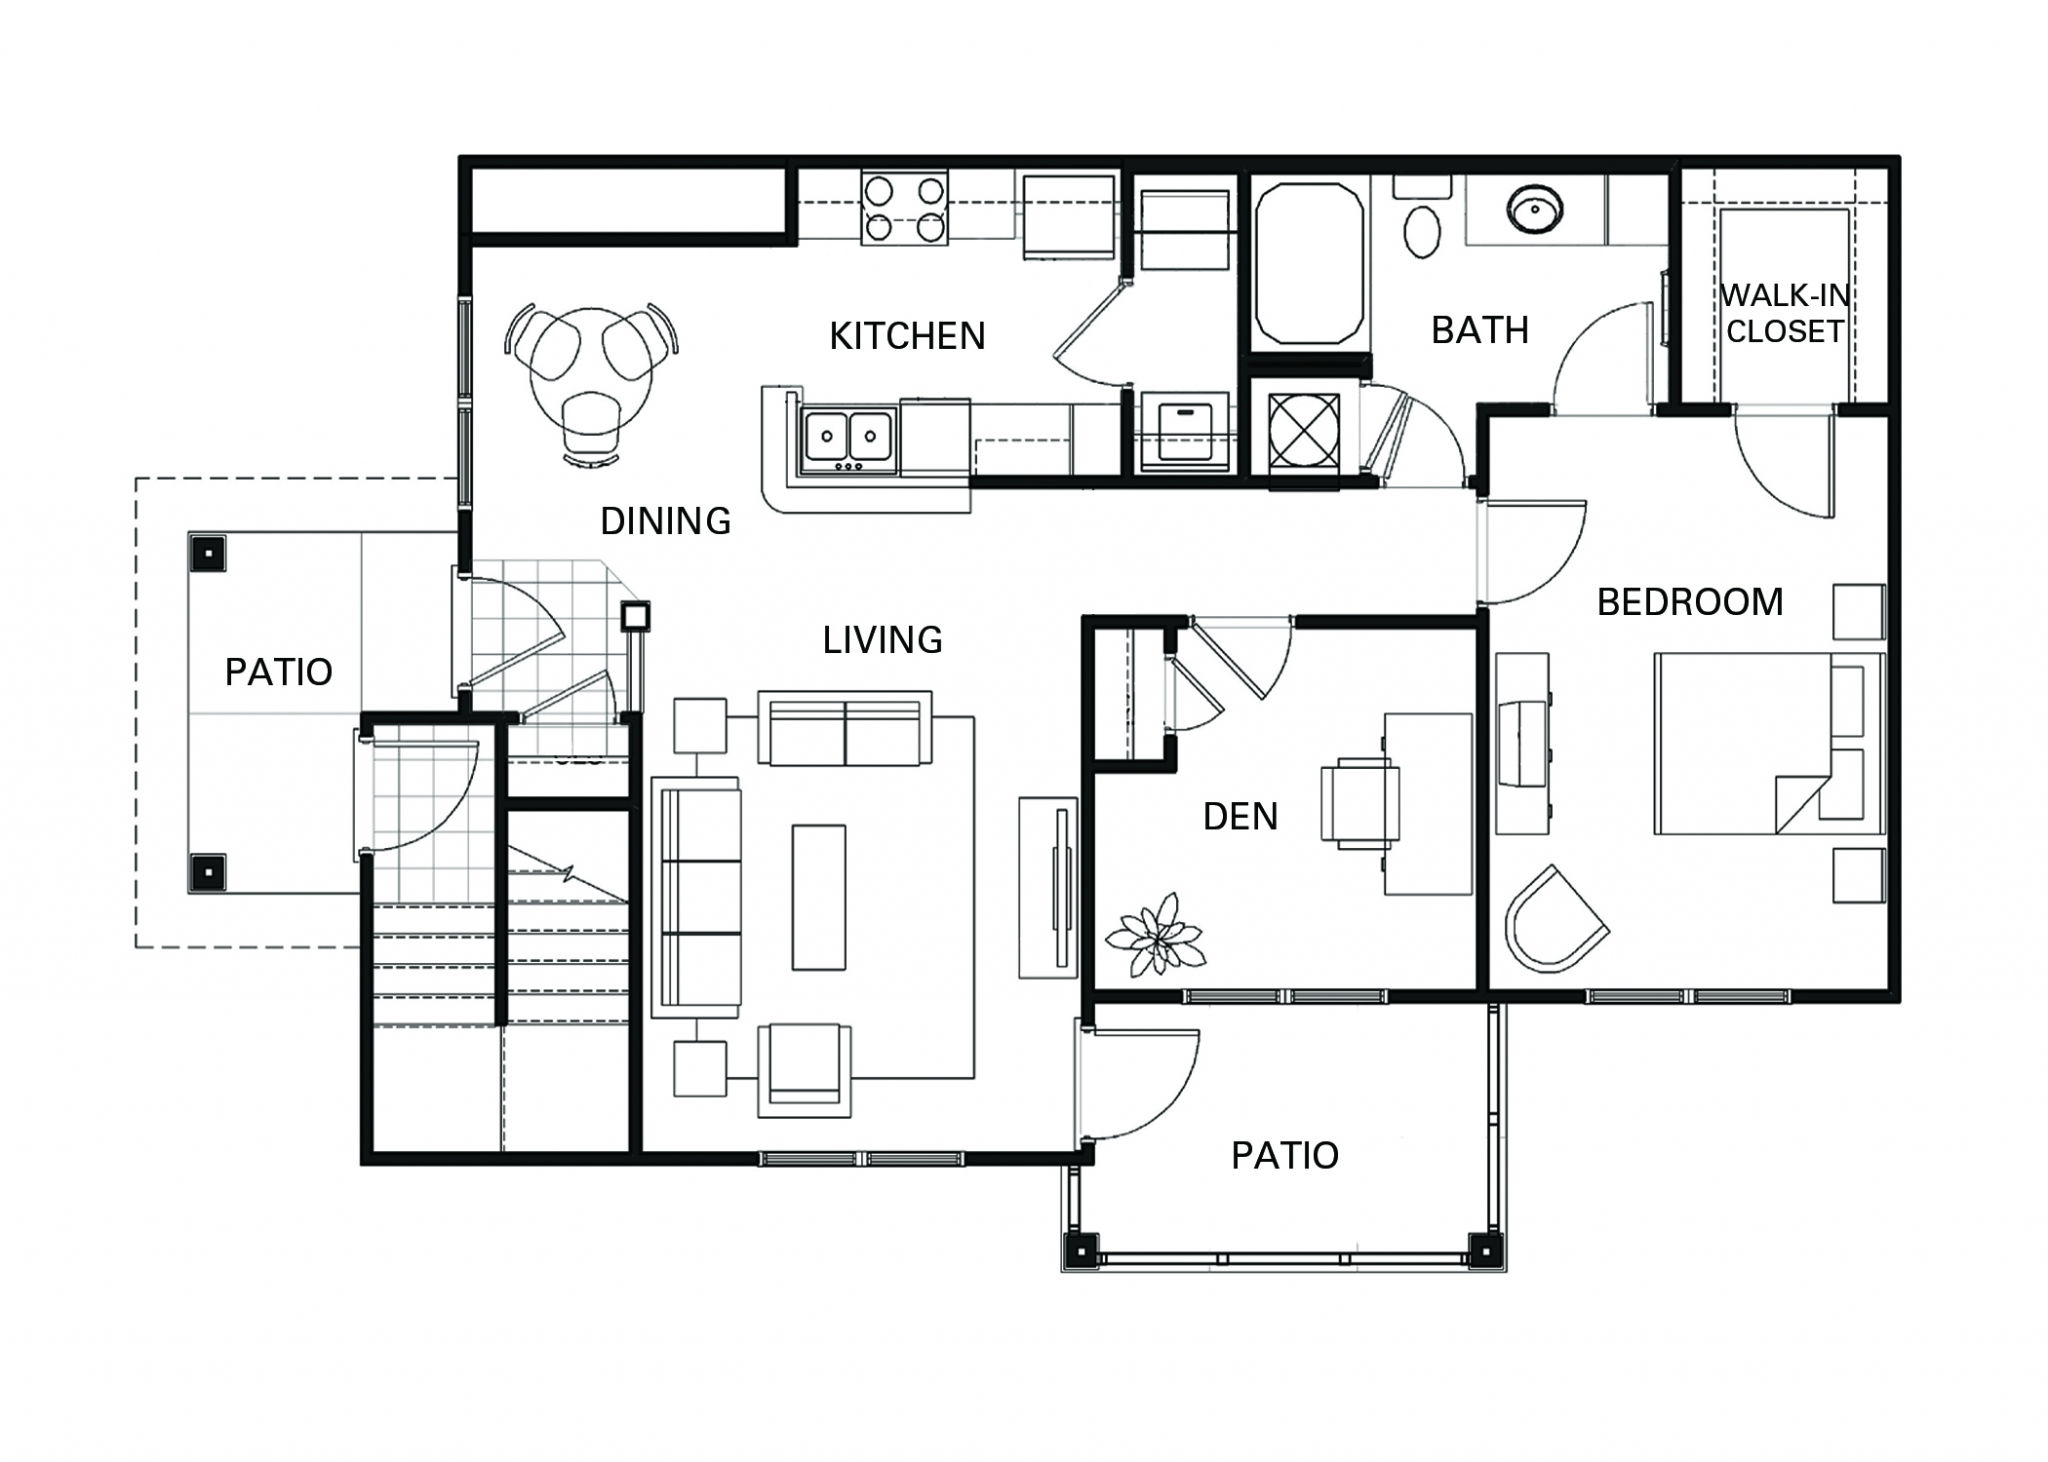 One bedroom one bathroom A2D floorplan at The Apartments at Blakeney in Charlotte, NC